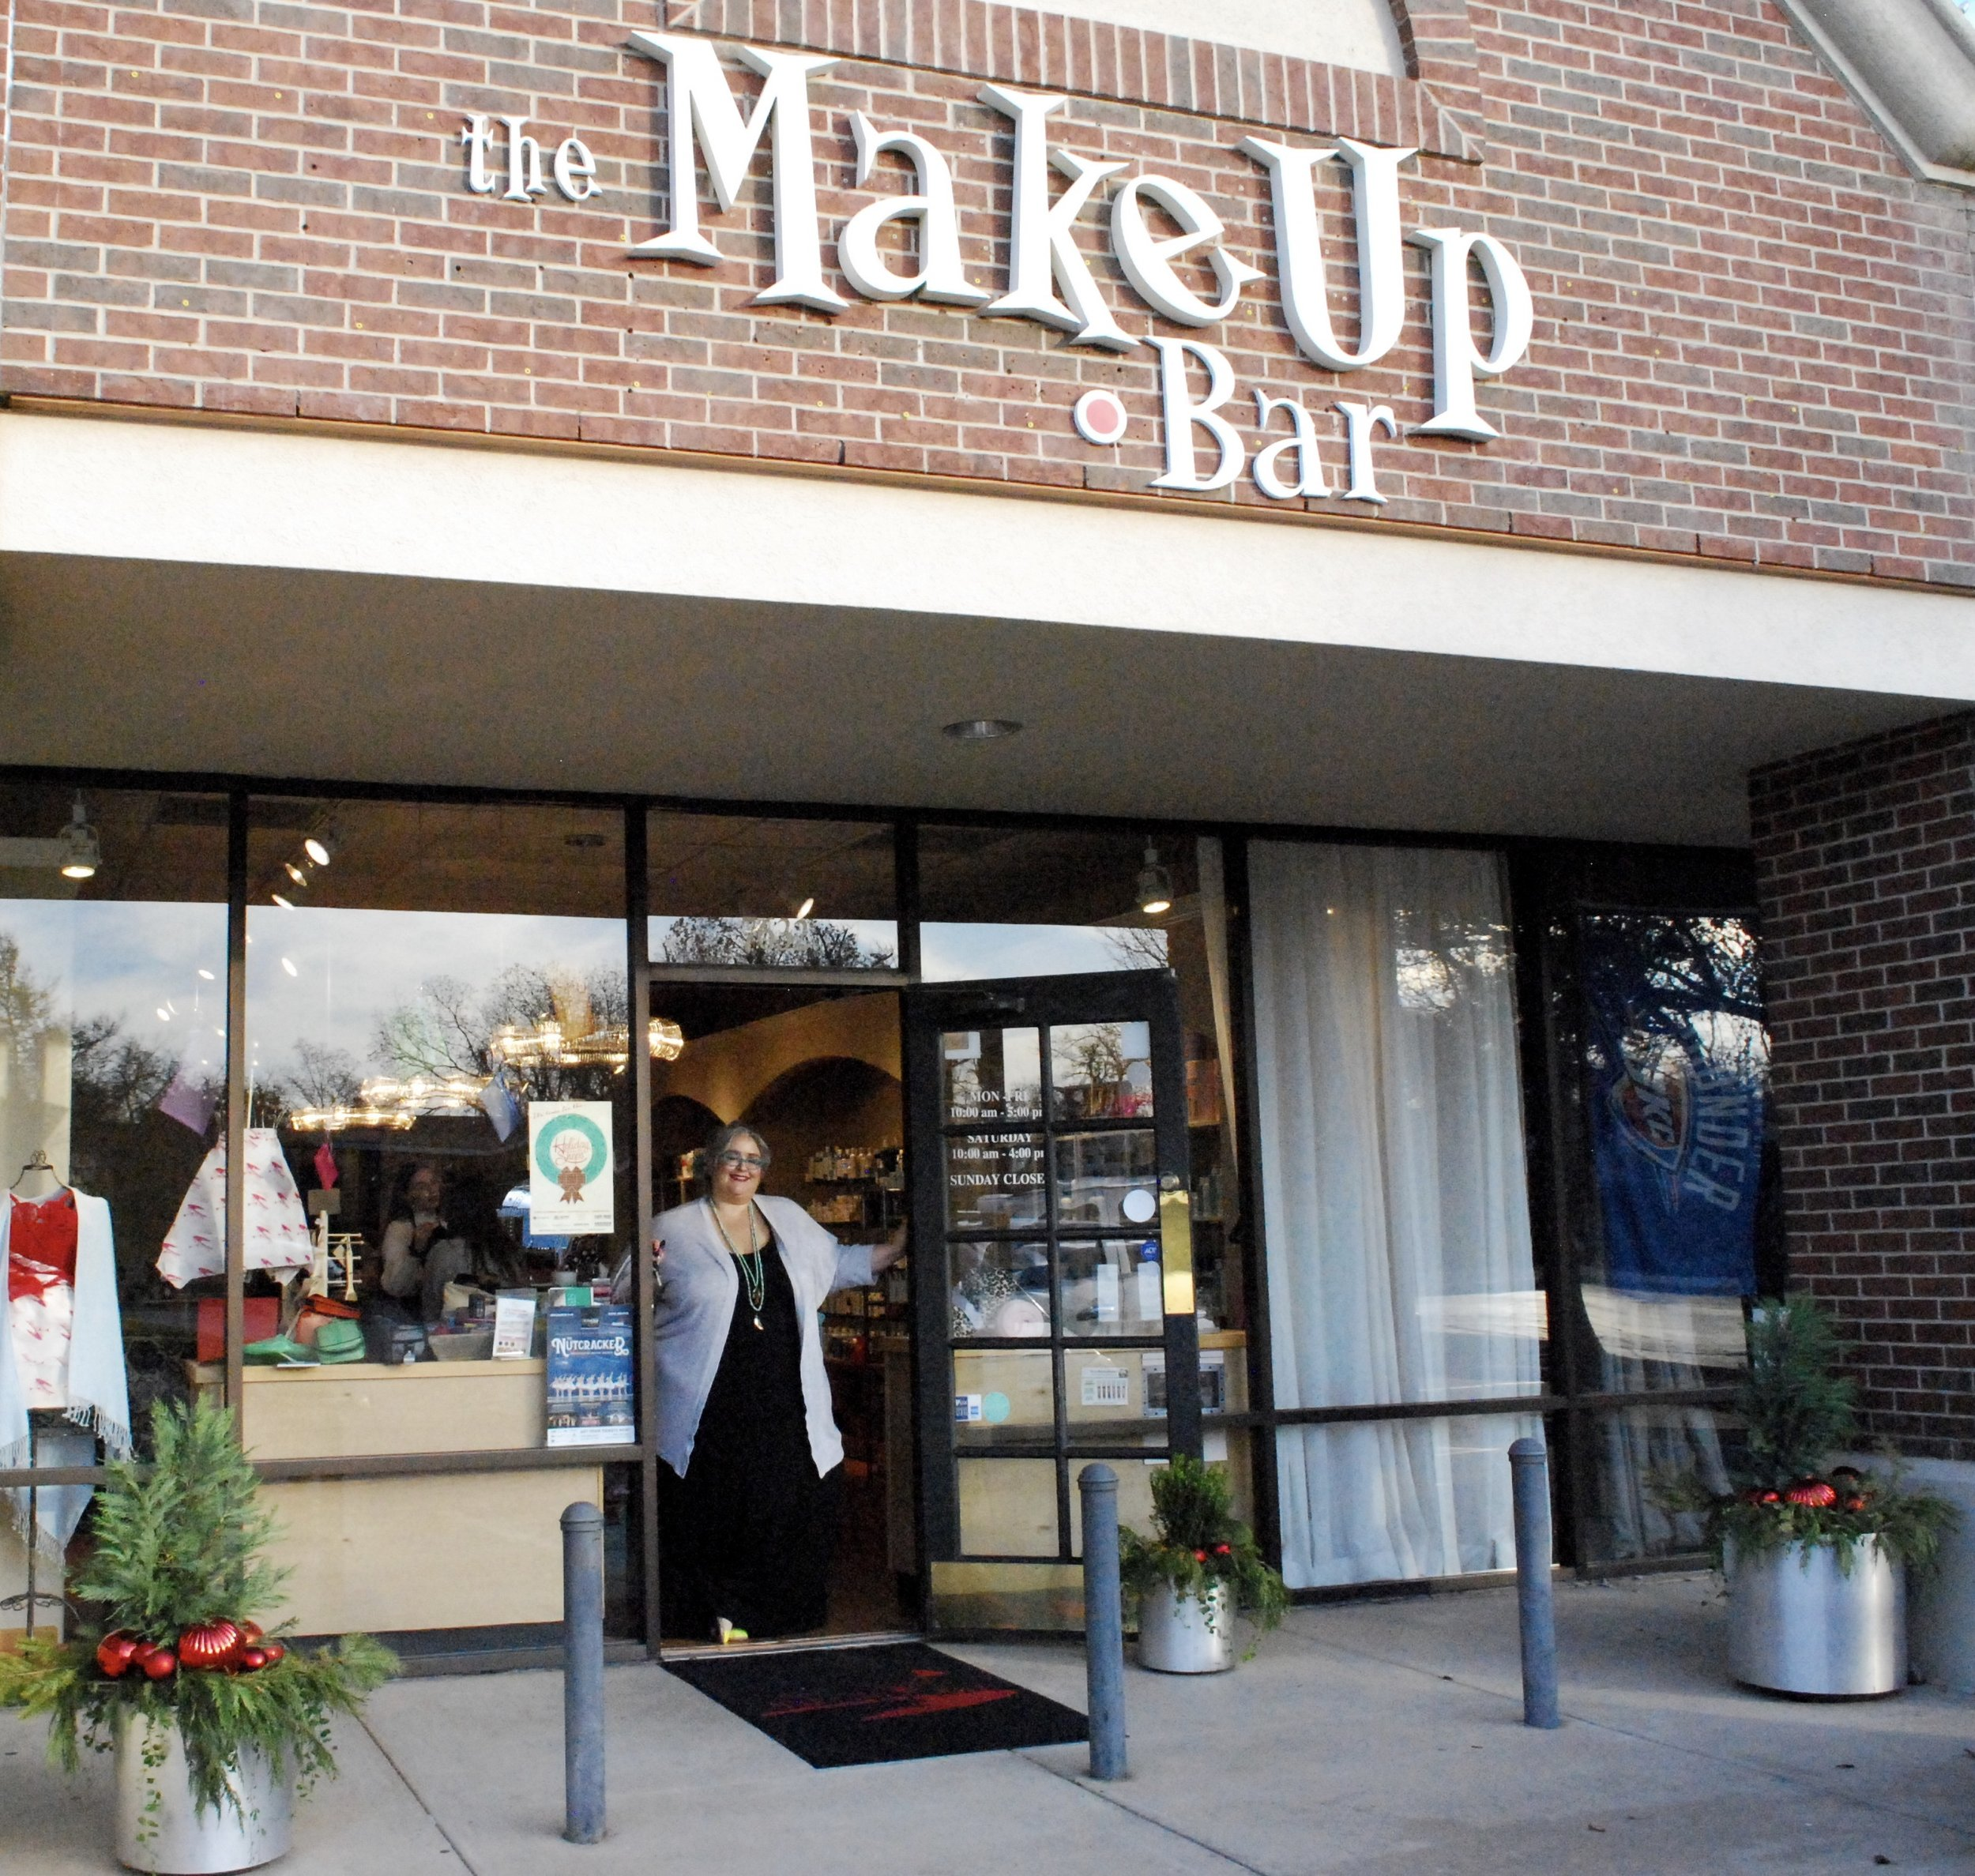 "Curb Appeal Shout Out!   WE LOVE ALEX! Her fabulous store, The MakeUp Bar, has been THE place to buy make up and skin care products in OKC since 2001. They also offer a full array of aesthetic treatments (We can vouch for their amazing facials). If you need any beauty products for a male or female loved one … run don't walk to The MakeUp Bar. Alex and her team will hook you up!   We've been digging in the dirt at The MakeUp Bar and Alex's home for 4 years. Alex says it best when asked about why she reached out to Adorn. ""Oh Lordy, anybody who knows me, knows I can't keep a plastic plant from turning yellow. So when I saw an instagram post about Adorn, I immediately called and inquired! After talking to Elizabeth I felt like she really heard what I was saying and that I needed low maintenance. After she was done with my pots at home they looked so incredible I had her do the pots at The MakeUp Bar. I couldn't stop singing her praises and telling all my friends and clients about her. Adorn is a luxury and sometimes I have to really budget it in, but it is a treat that keeps on giving every time I walk in at home or at work! I will always use and recommend Elizabeth and Adorn.""  Awwww thank you Alex! We love you too!  And we love all our friends of Adorn! We thank you all for your interest in container gardening and outdoor decor. We wish you a wonderful holiday season!   Cheers! Elizabeth & Julie"